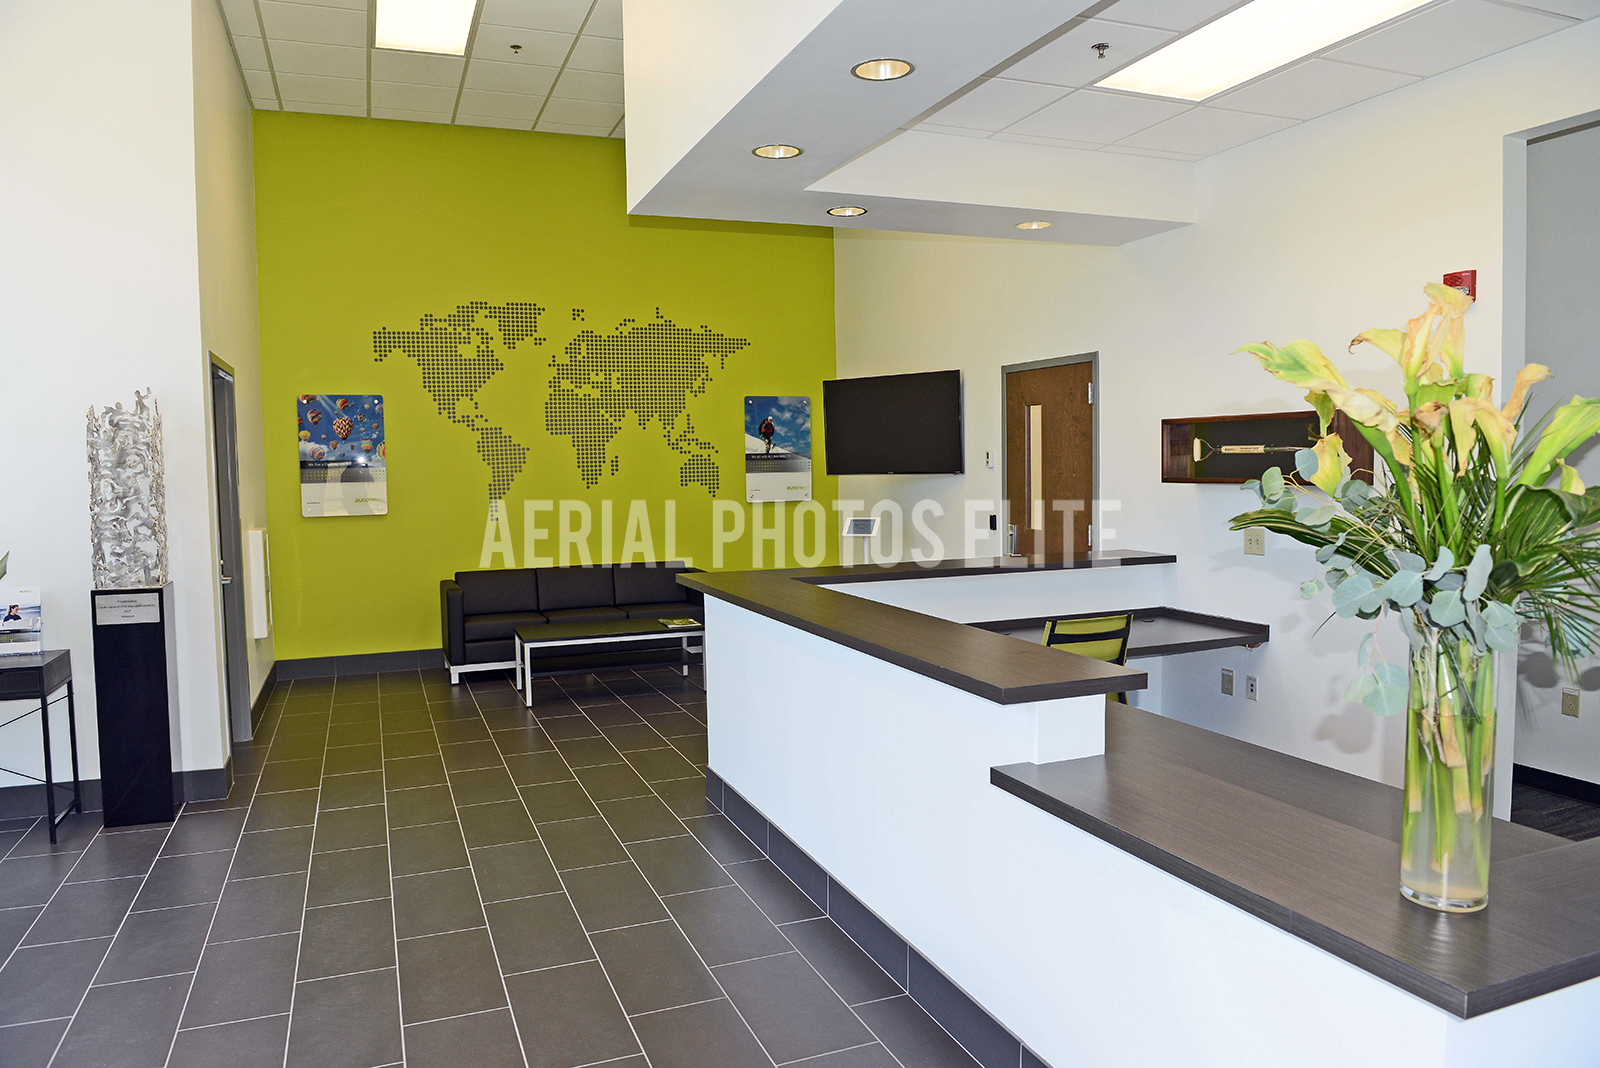 Reception Area South Carolina | Aerial Photos Elite